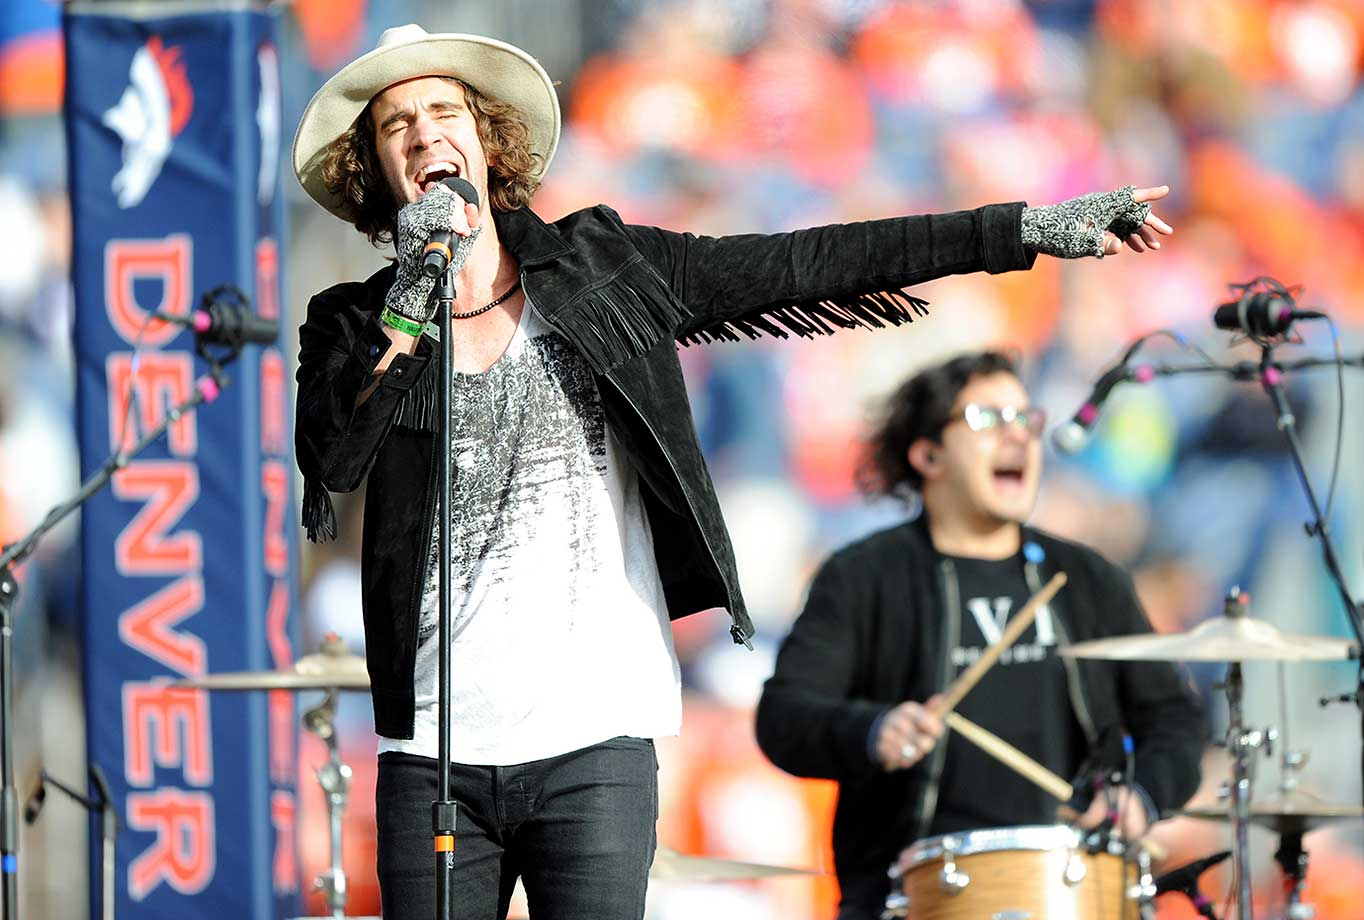 Zac Barnett of American Authors performs at halftime of the AFC Championship game.